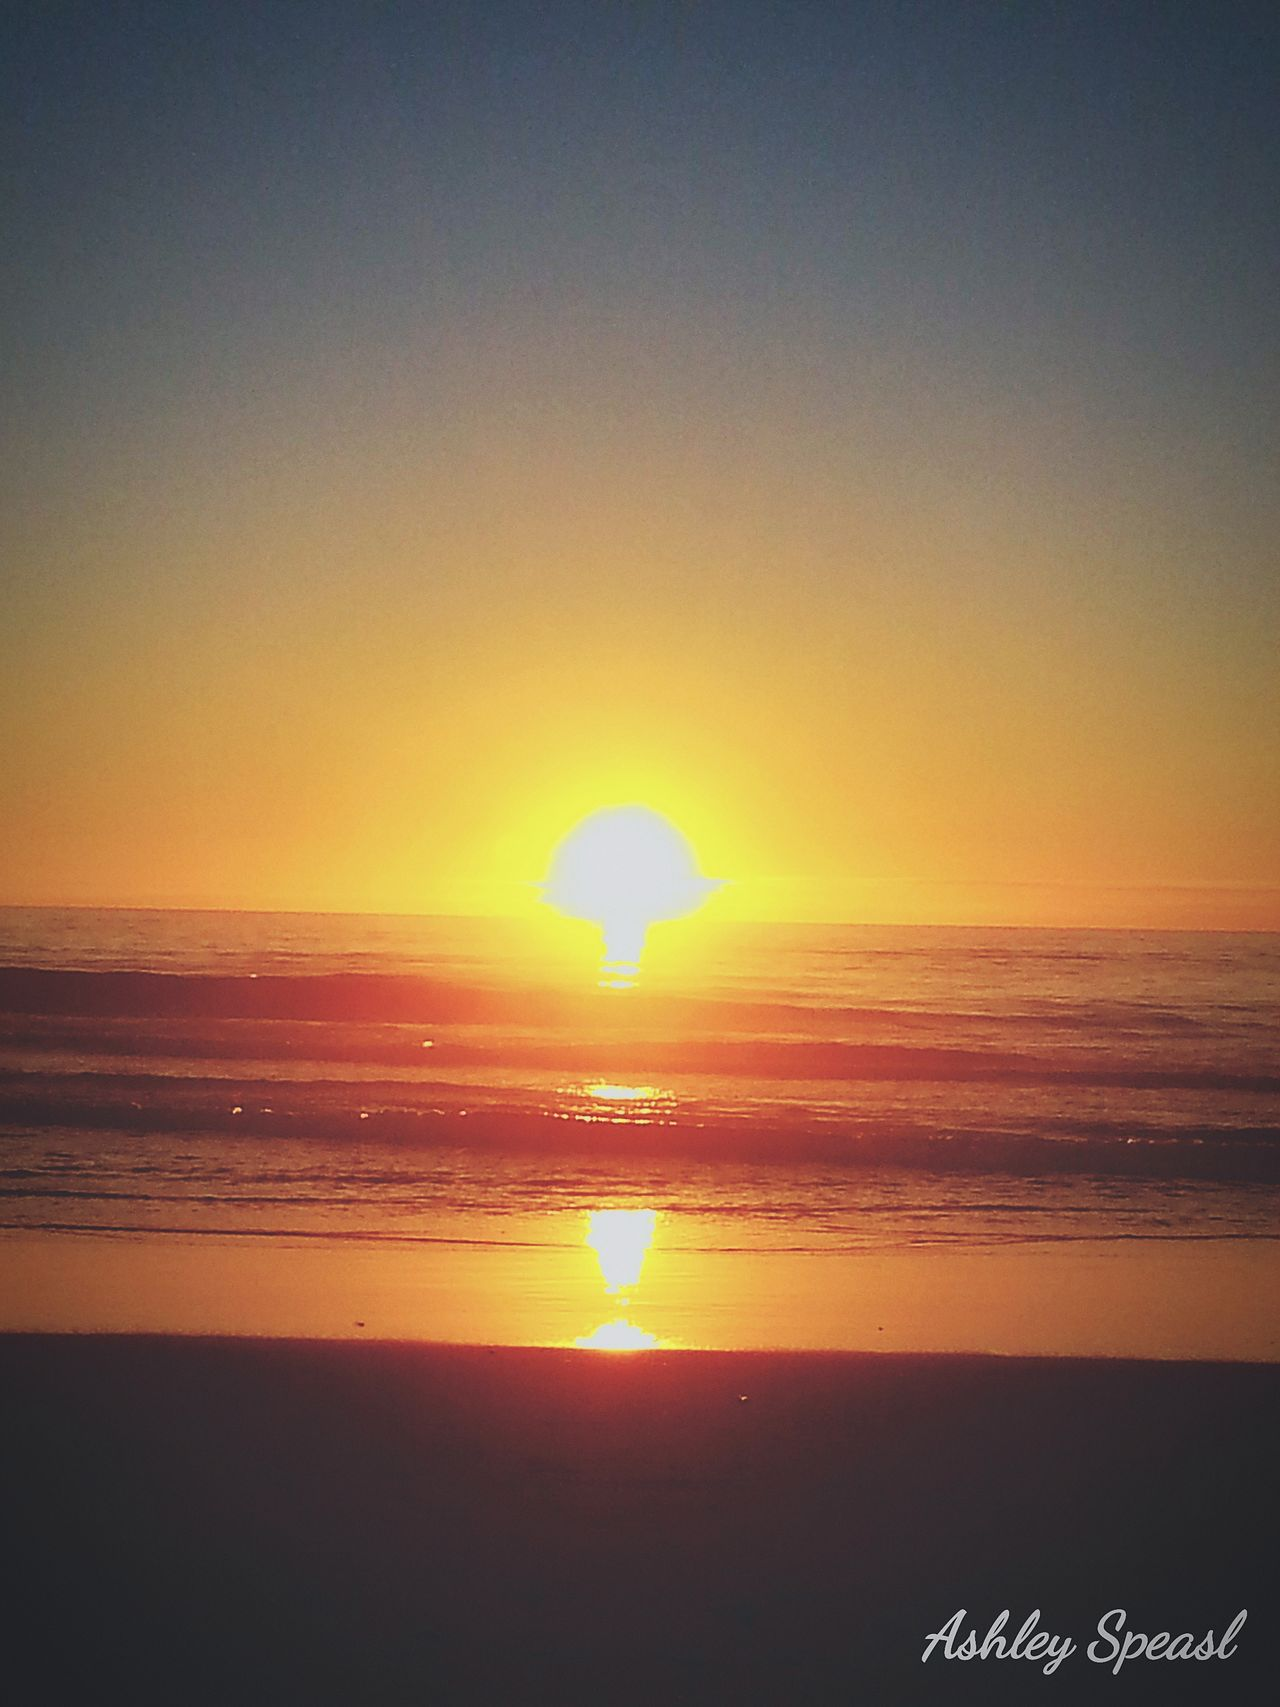 Sunset Sea Sun Beauty In Nature Tranquility Orange Color Horizon Over Water Scenics Beach Nature Tranquil Scene Sunlight Sunbeam Sky Sand Summer Oregon Beauty CaptureTheMoment Romance Of Nature Escape Enjoyment Landscape Happiness My Year My View Love Life